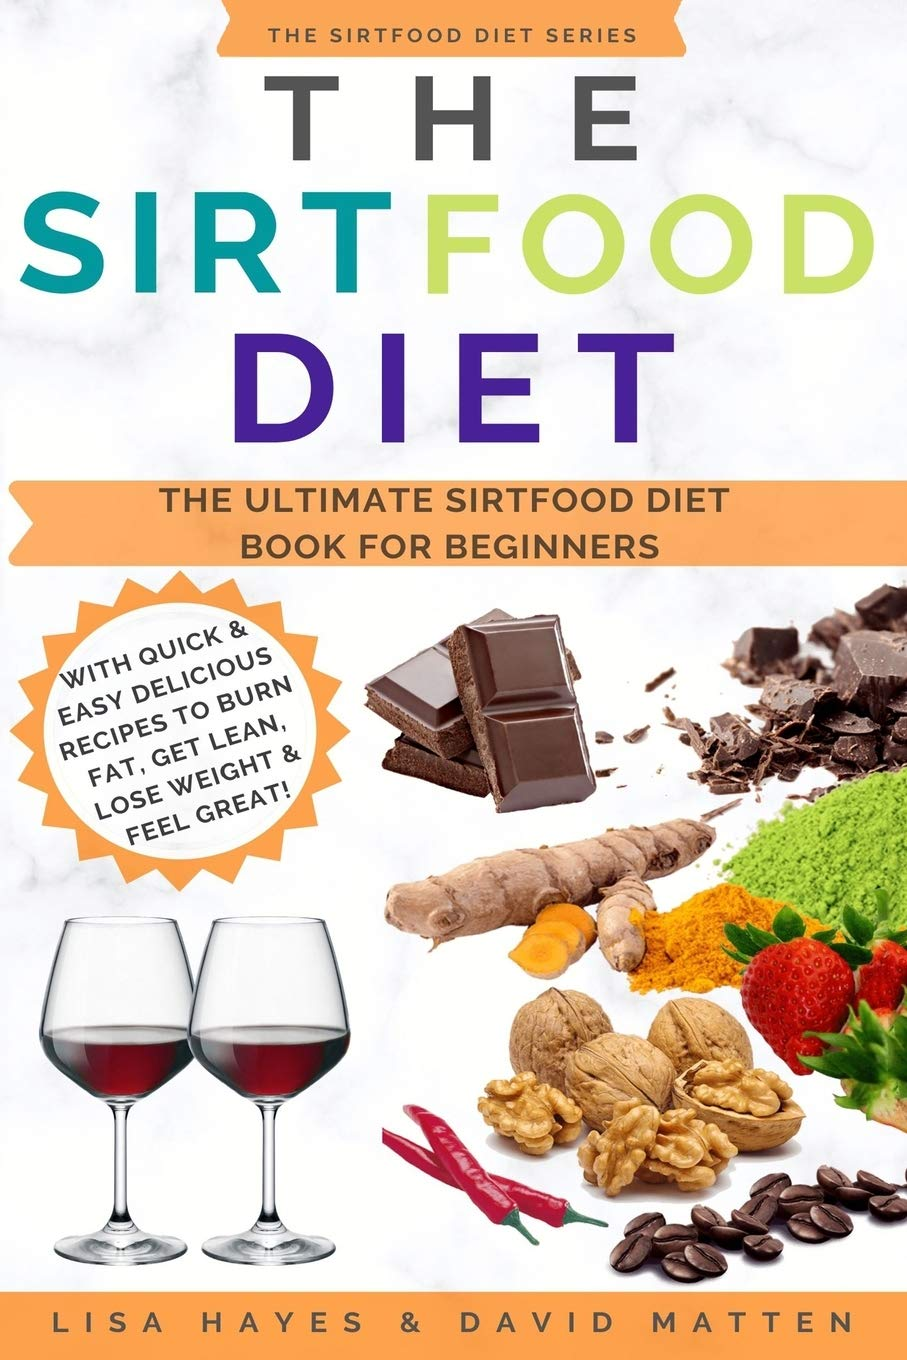 Download [PDF] The Sirtfood Diet The Ultimate Sirtfood Diet Book For Beginners With Quick Easy Delicious Recipes To Burn Fat Get Lean Lose Weight Feel Great